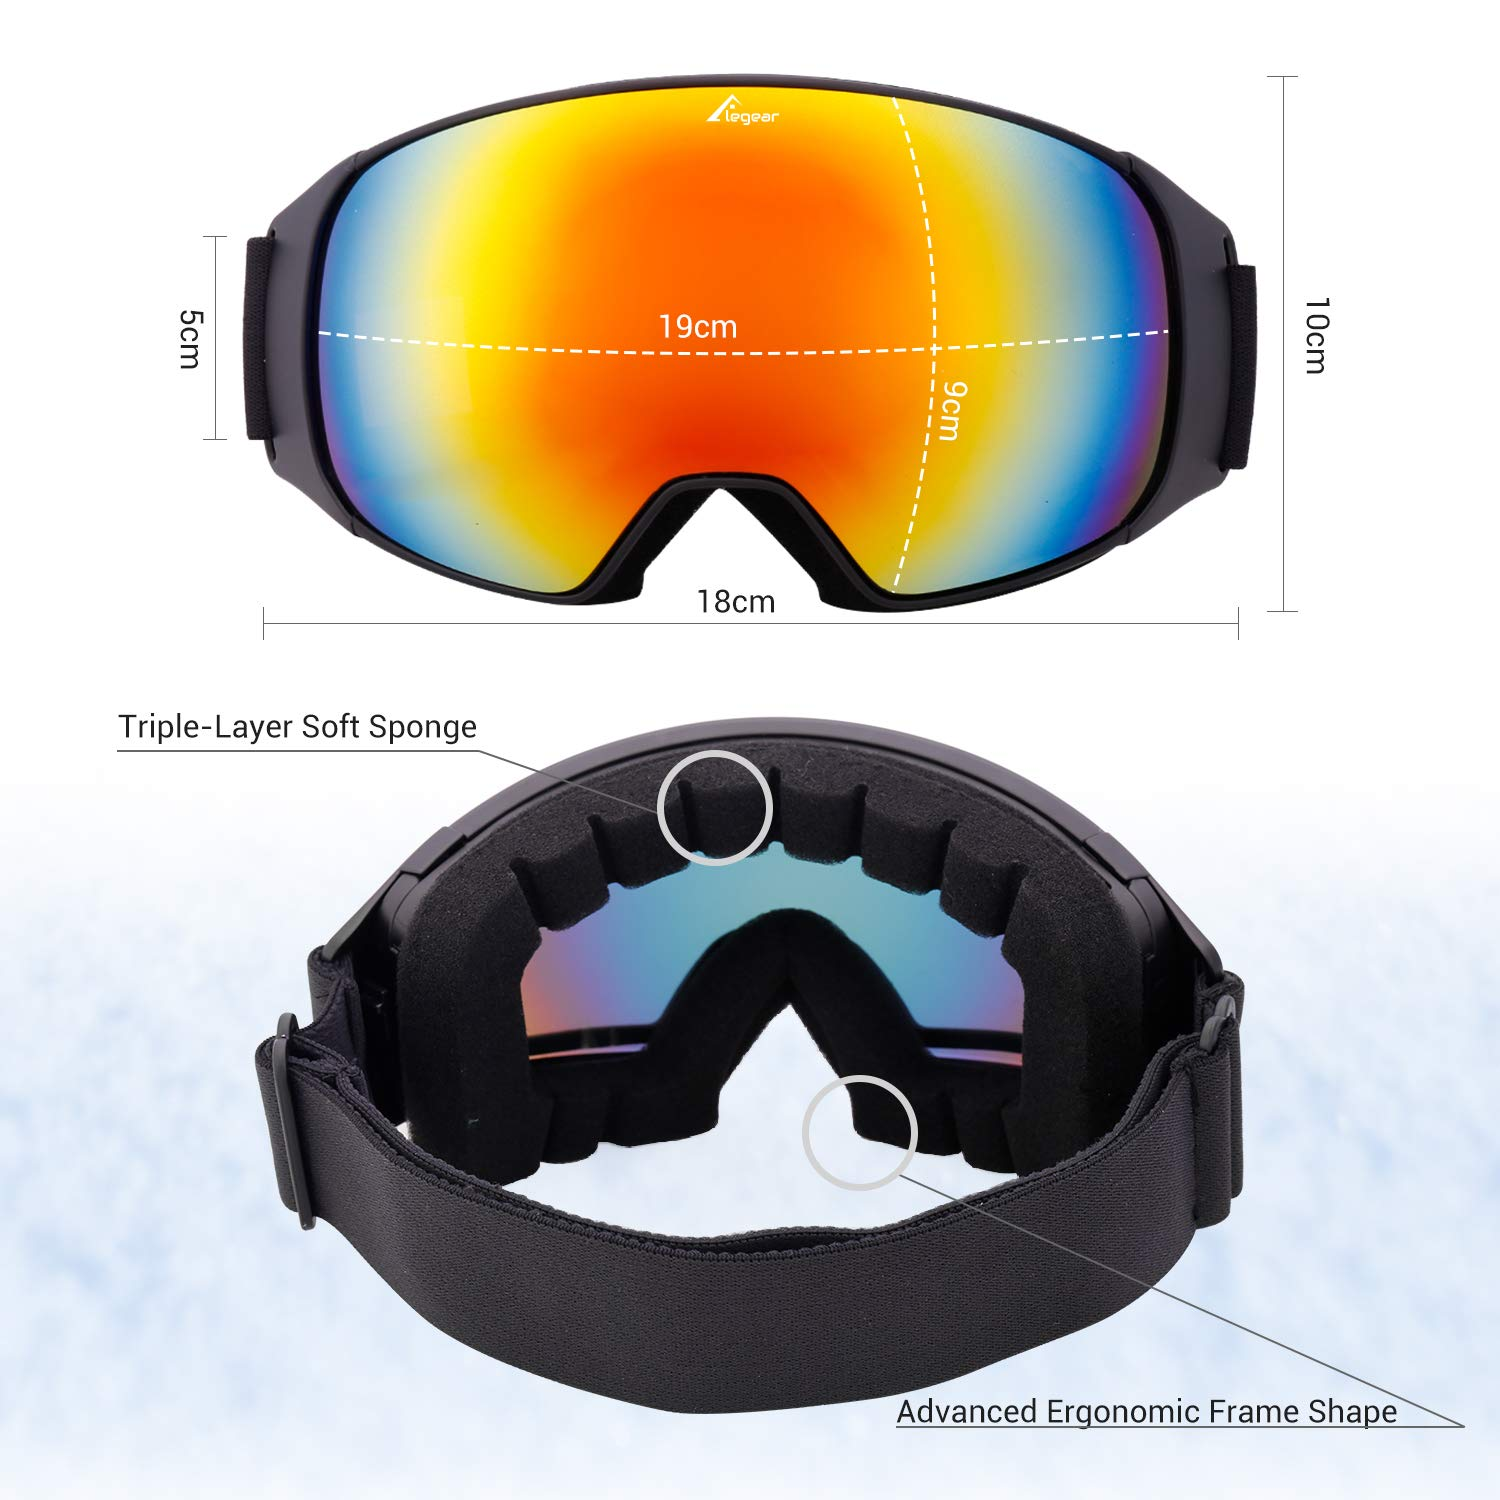 Elegear Ski Goggles, Snowboard Goggles Anti-Glare Anti-Fog Waterproof 100% UV Protection with Double-Layer Spherical Detachable Lenses, Helmet Compatible Snow Goggles for Youth, Men, Women